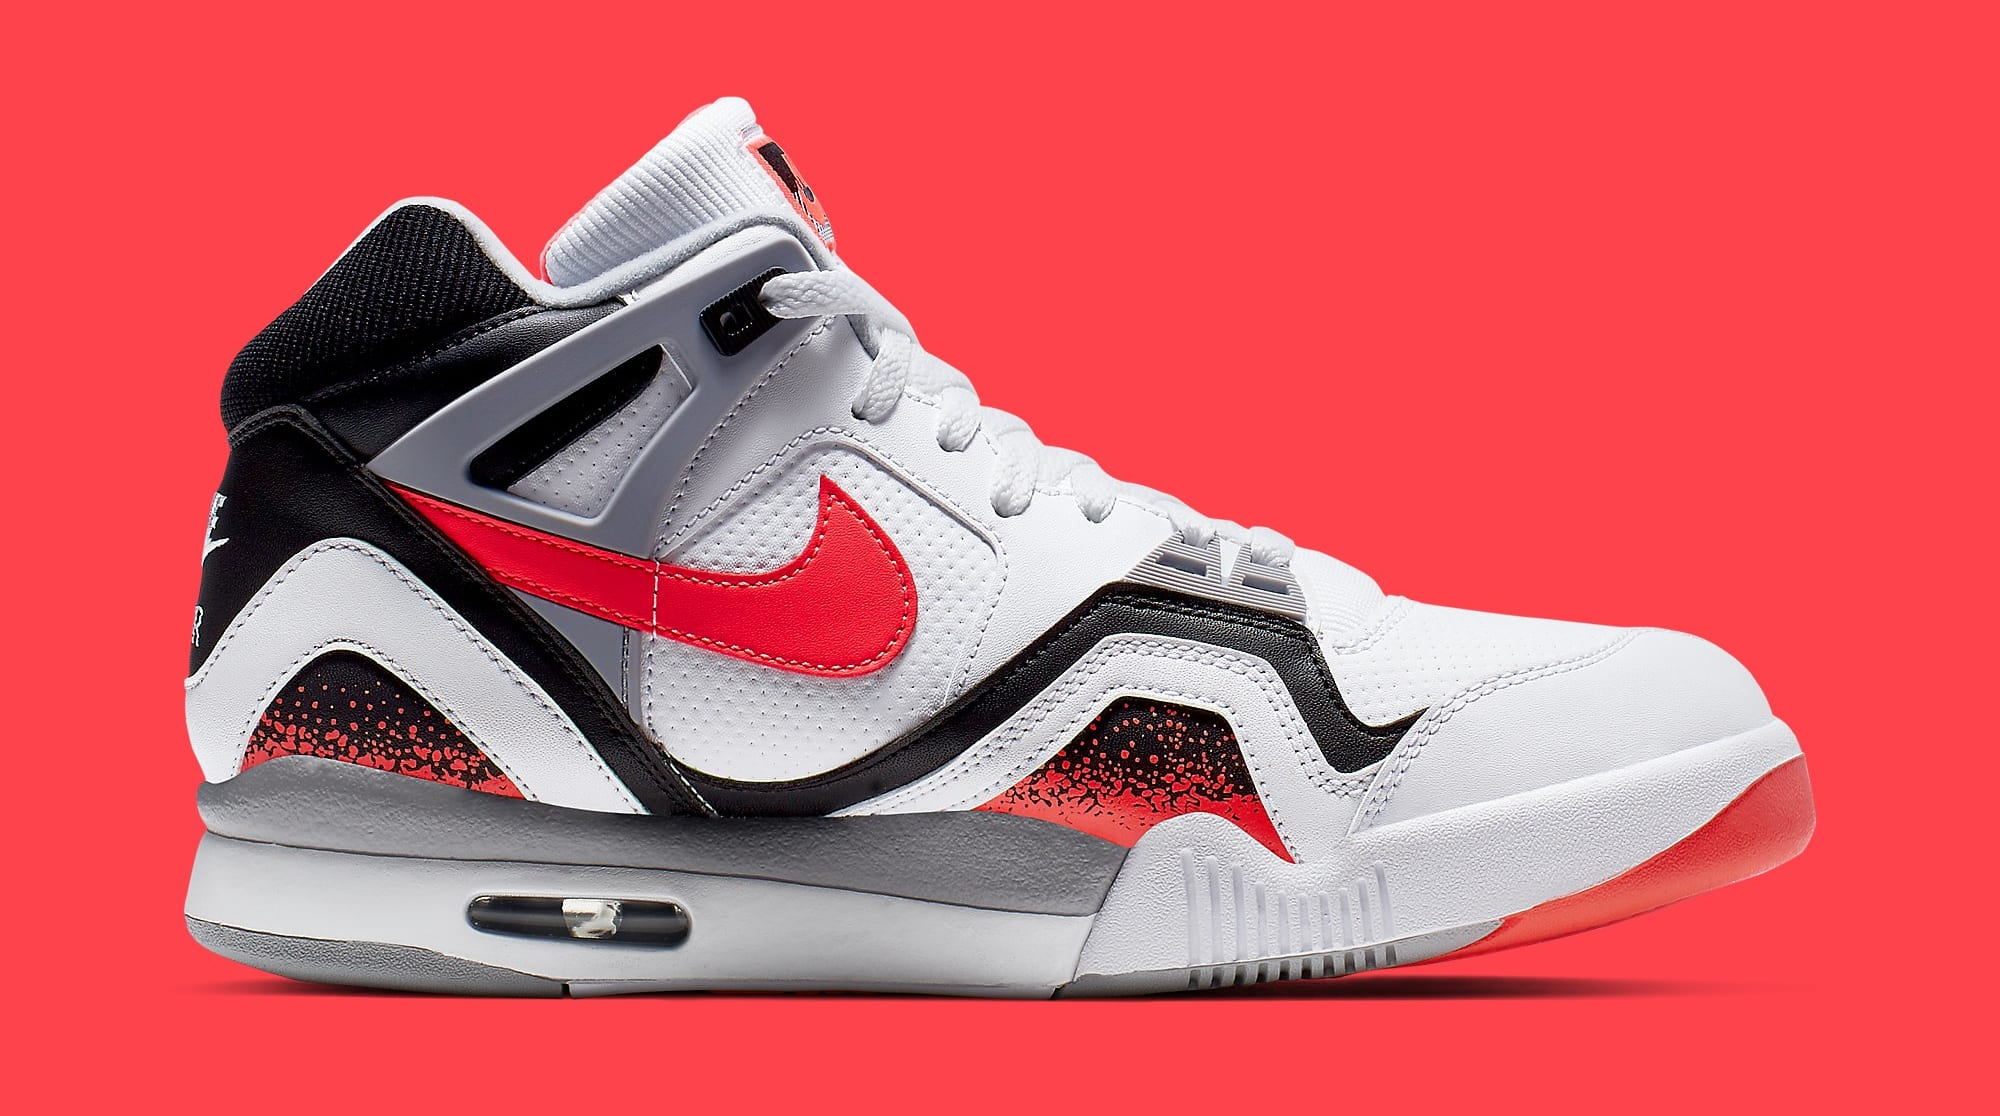 Nike Air Tech Challenge 2 'Hot Lava' CJ1437-100 (Medial)